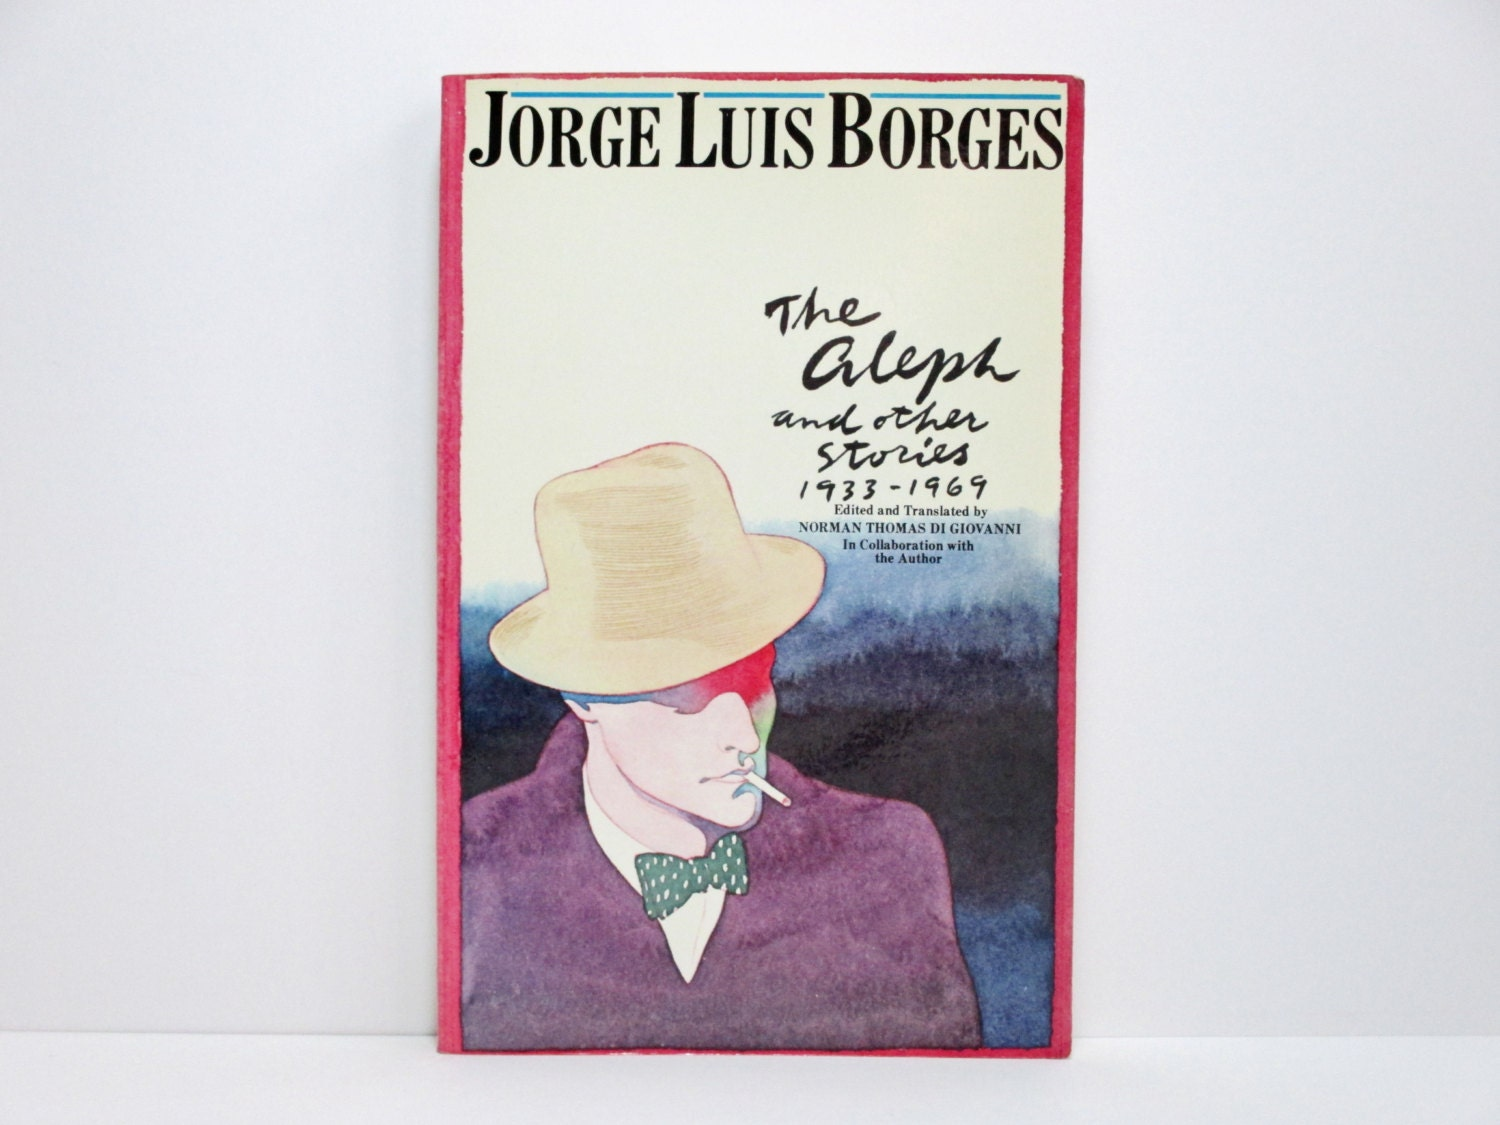 1933 1969 aleph autobiographical commentary essay other story together Aleph and other stories 1933-1969, together with commentaries and an  autobiographical essay jorge luis borges and norman thomas di giovanni (tr.